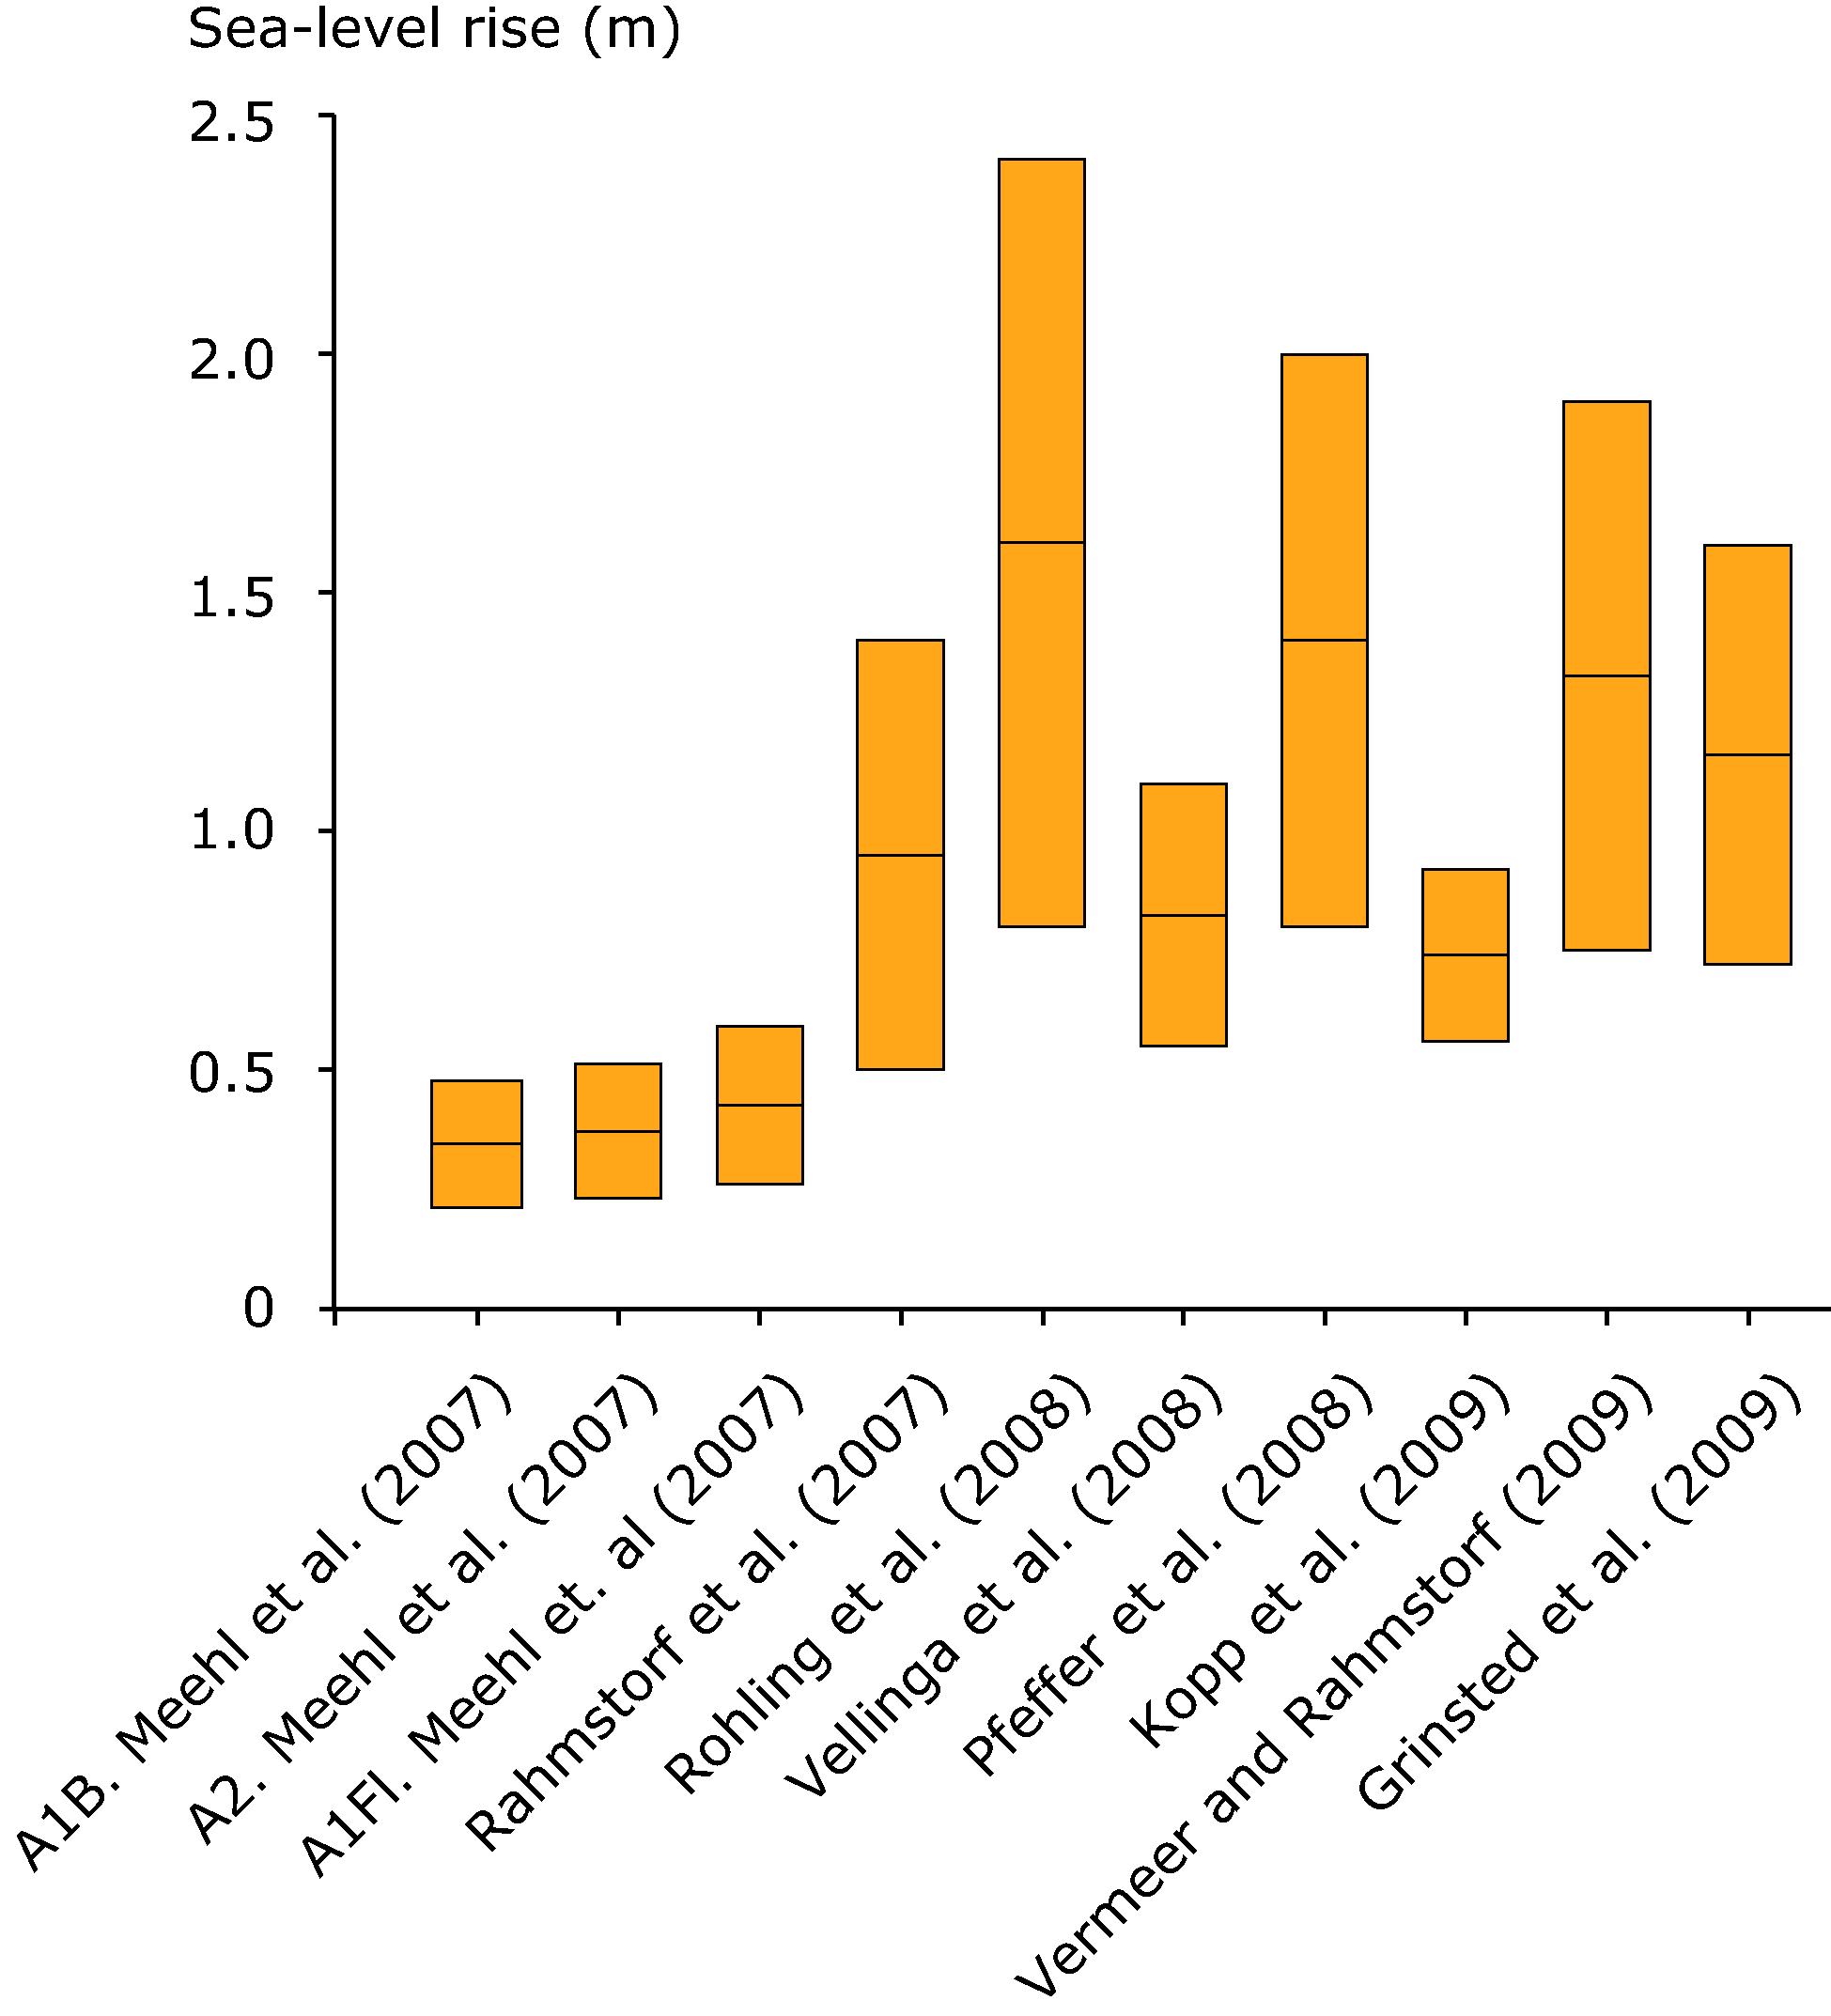 Range of high-end estimates of global sea-level rise published after the IPCC AR4